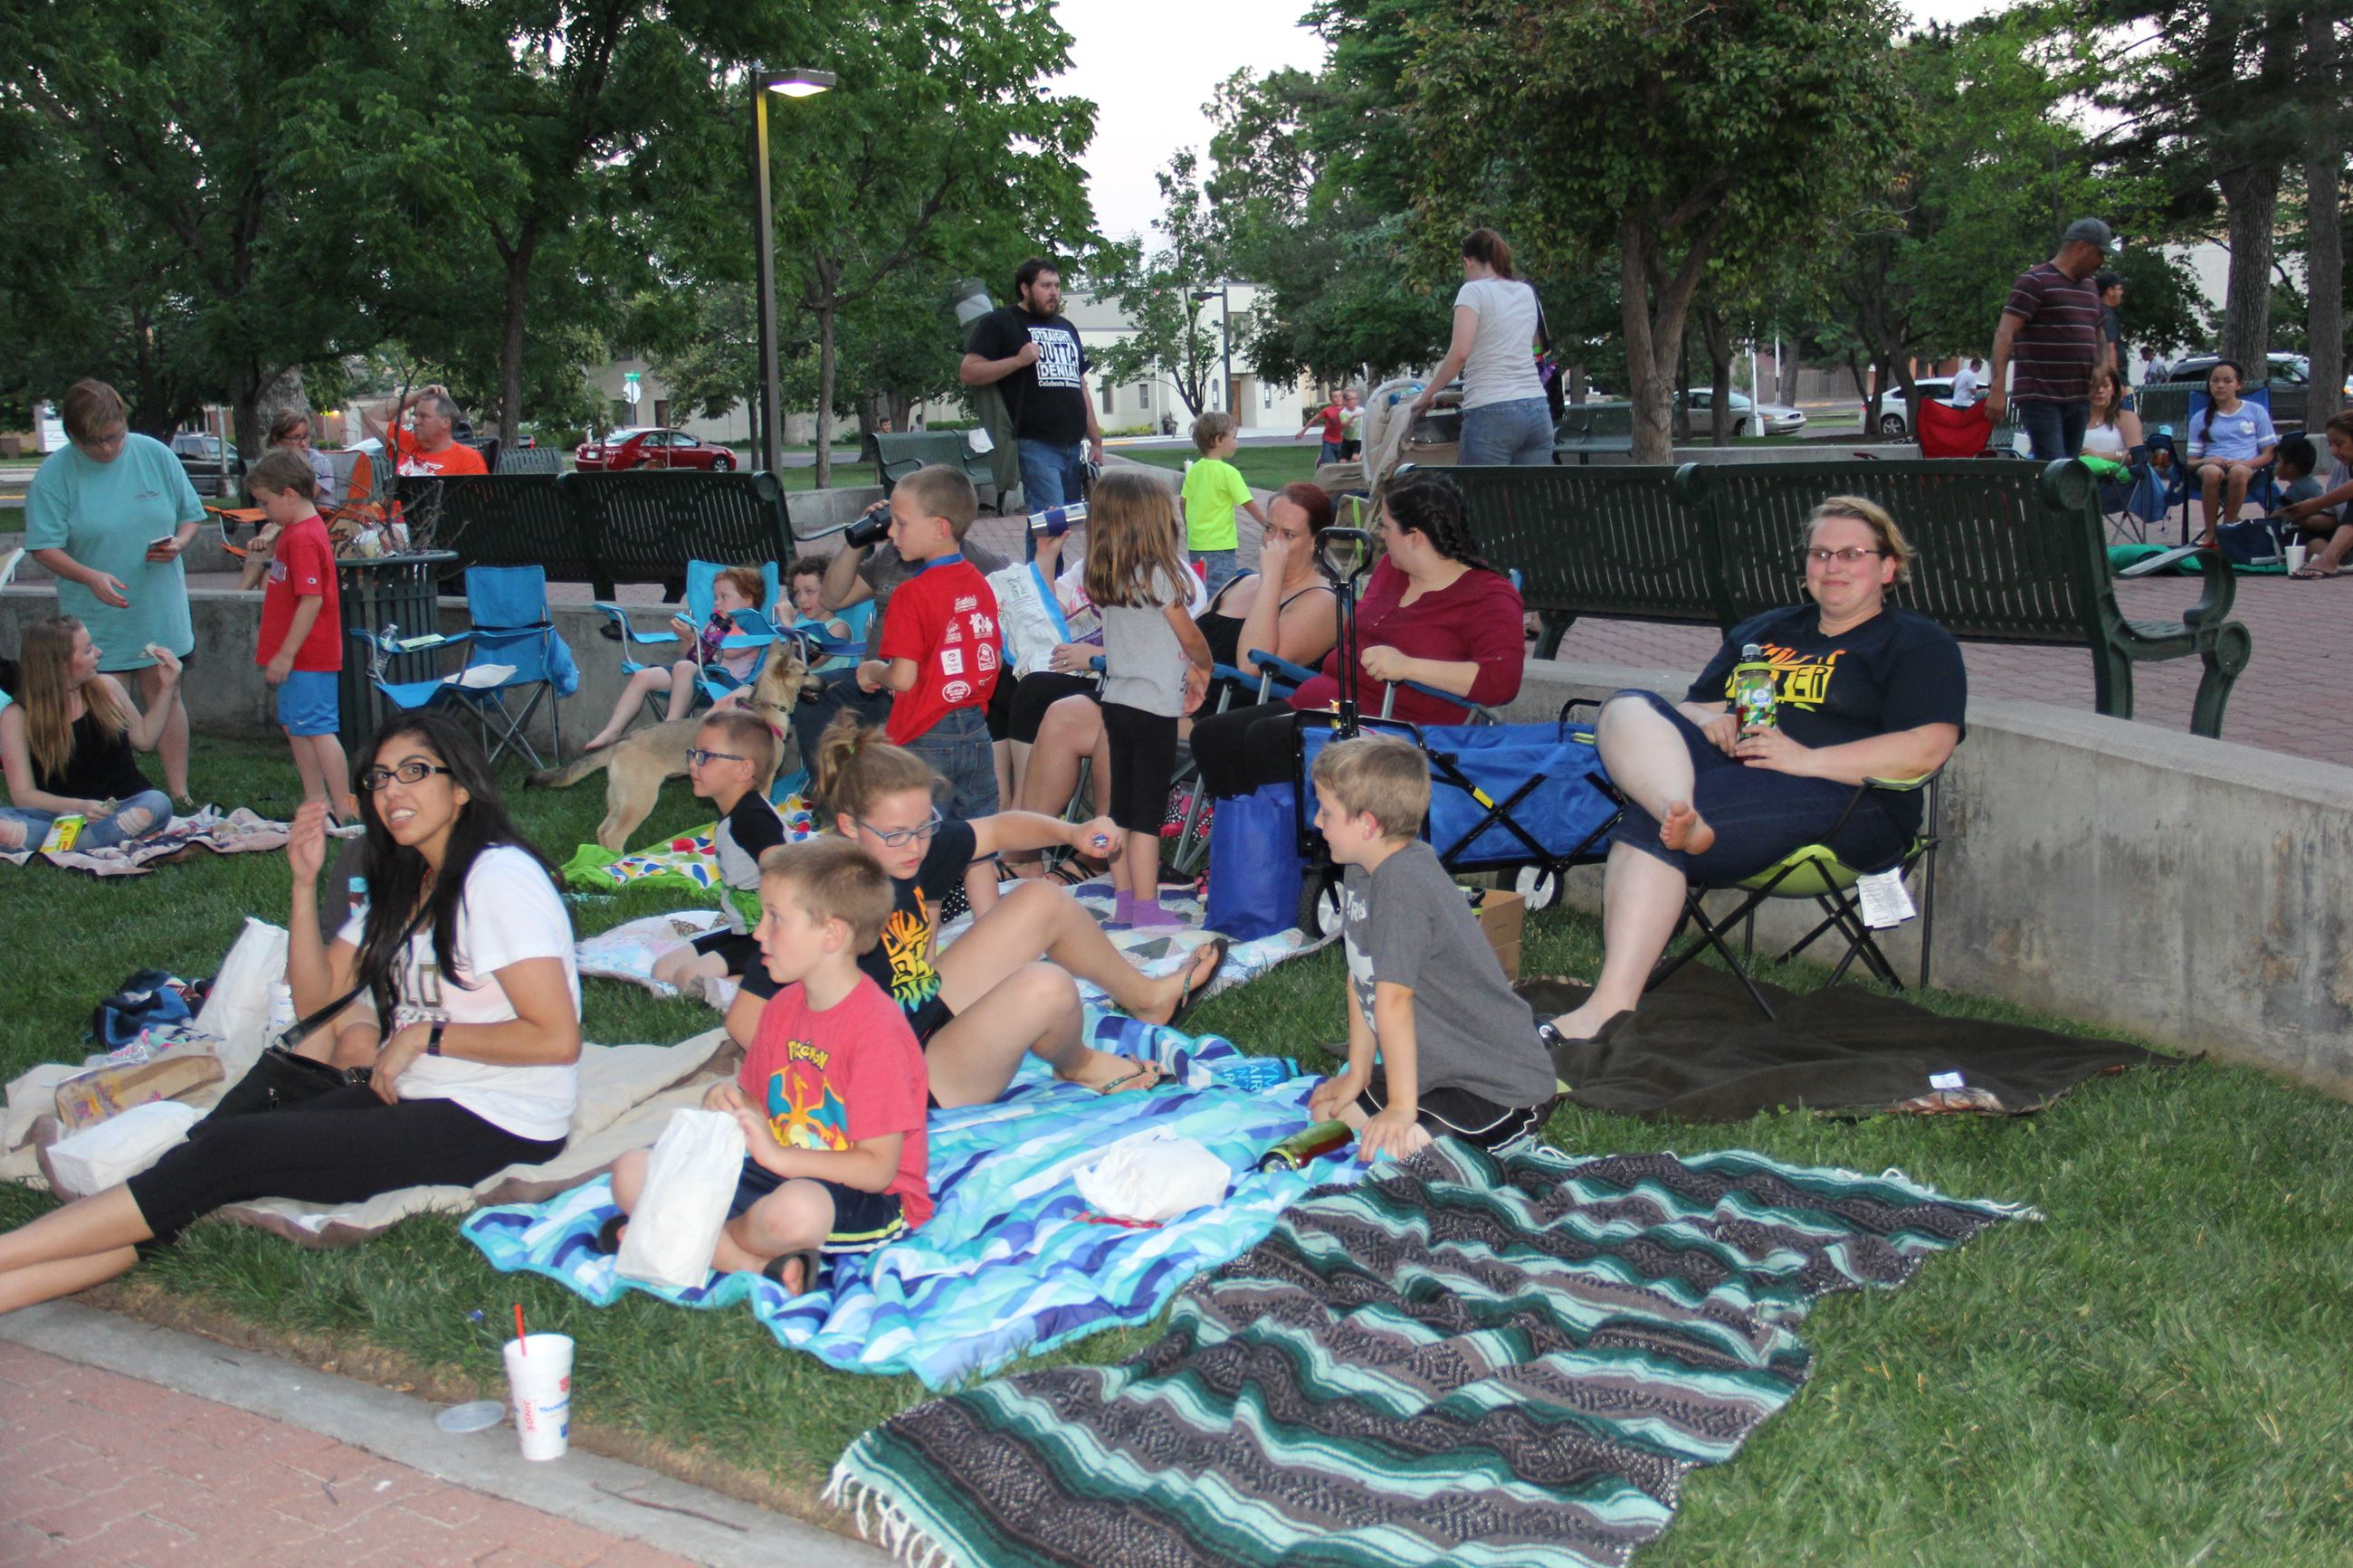 People gathered to watch movie in the park